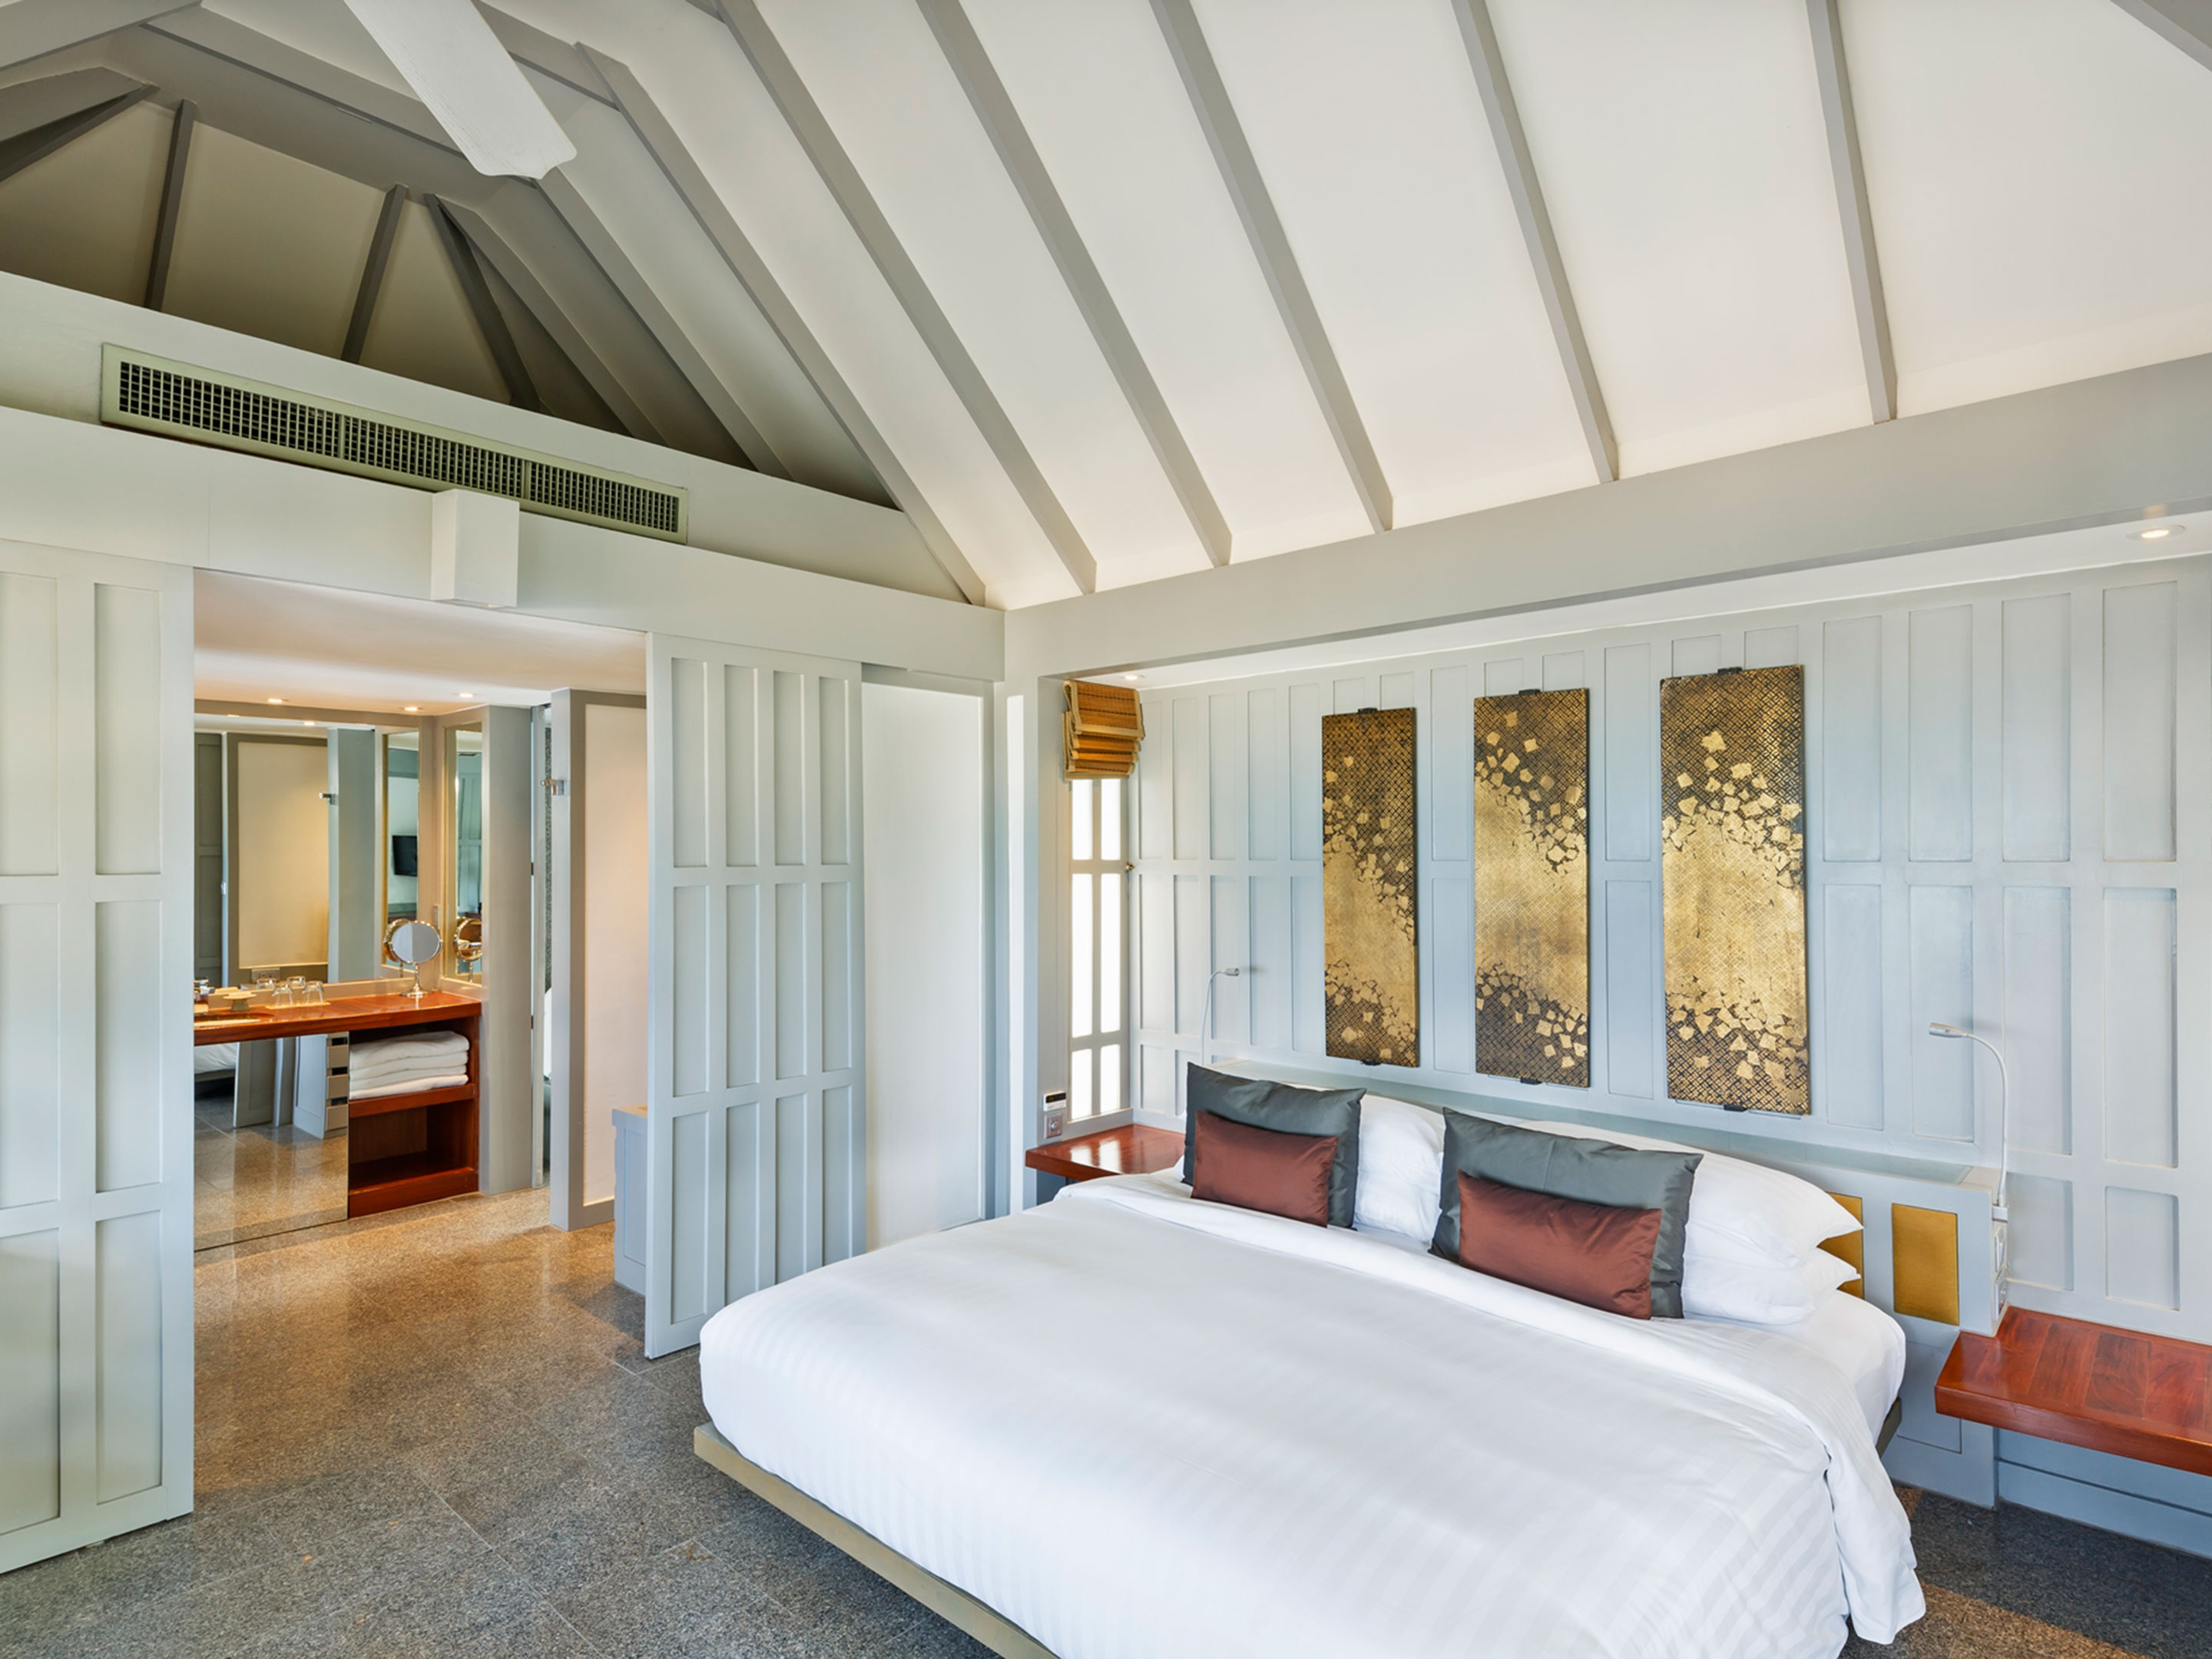 the-surin-phuket-one-bedroom-deluxe-cottage-v2-R-3.jpg